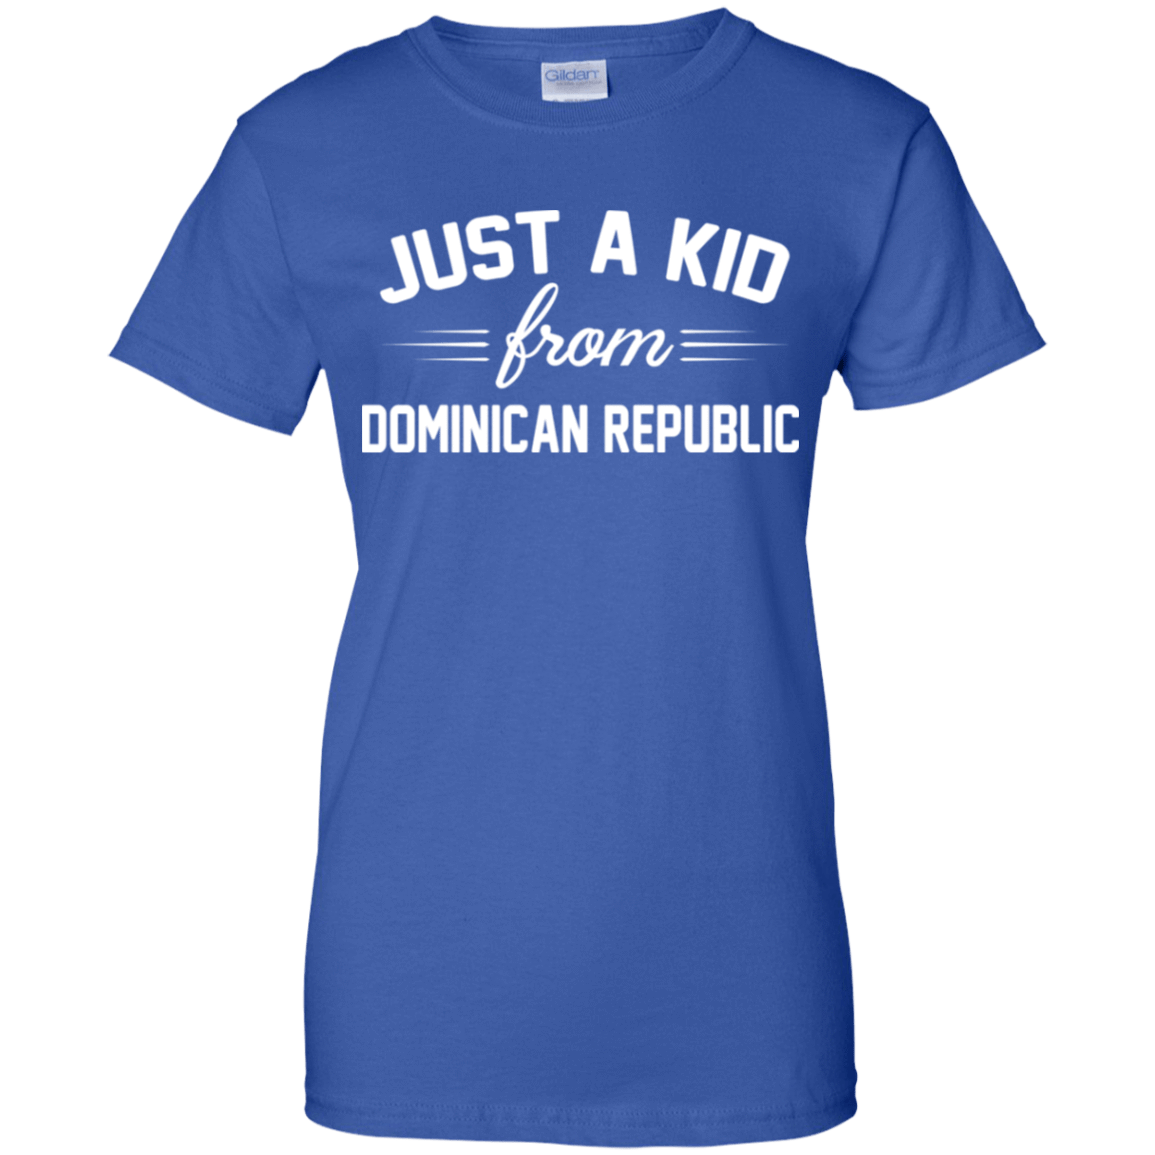 Just a Kid Store | Dominican Republic T-Shirts, Hoodie, Tank 939-9264-72092751-44807 - Tee Ript